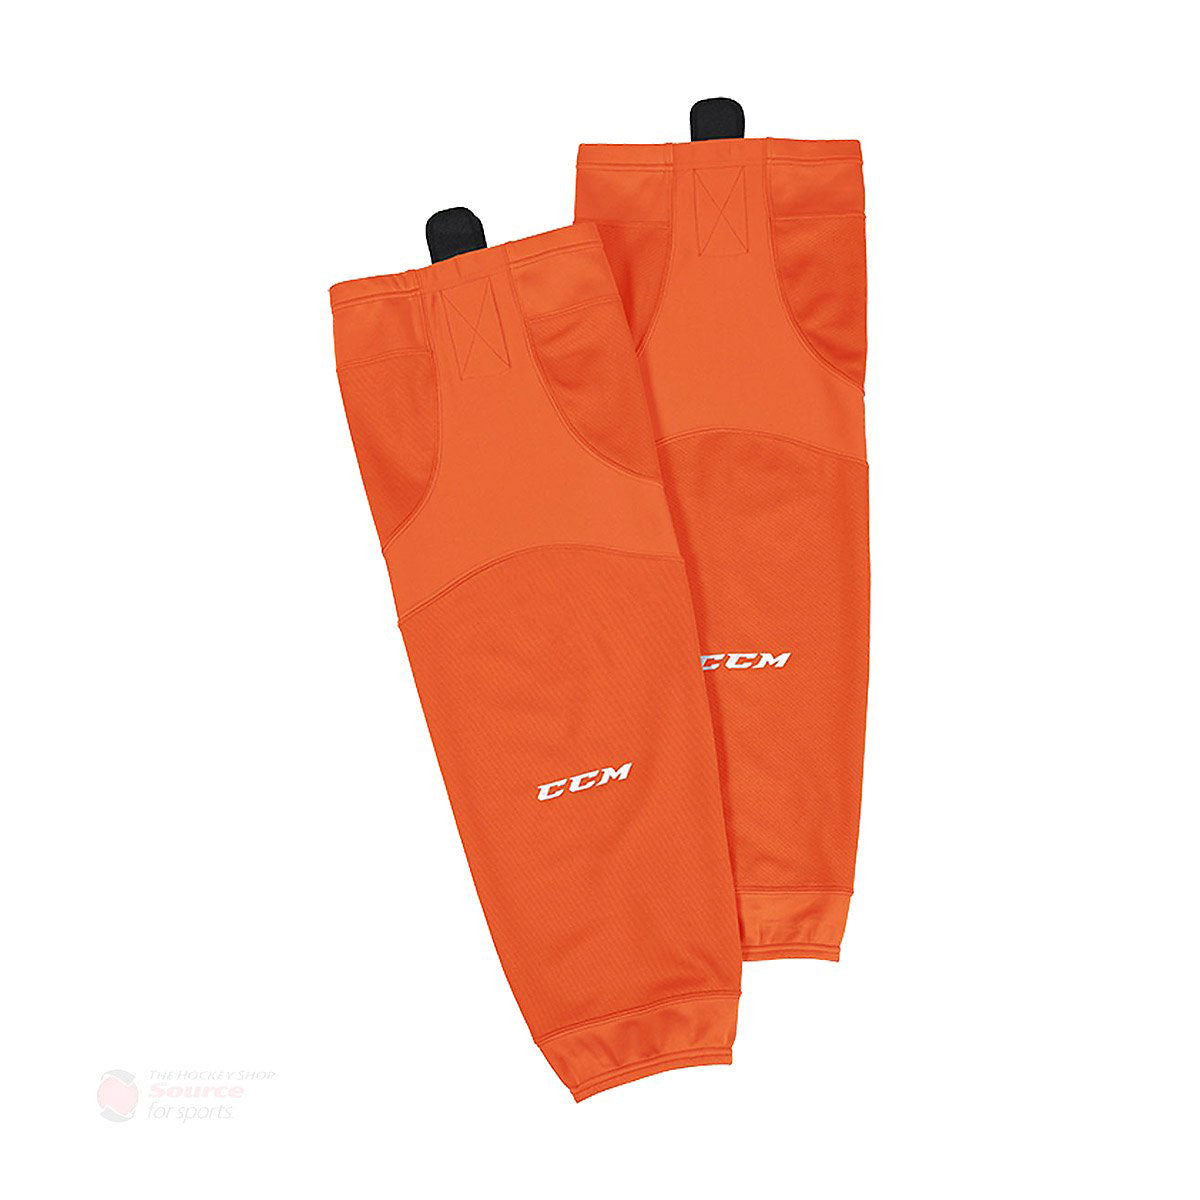 CCM Quicklite 6000 Orange Hockey Socks